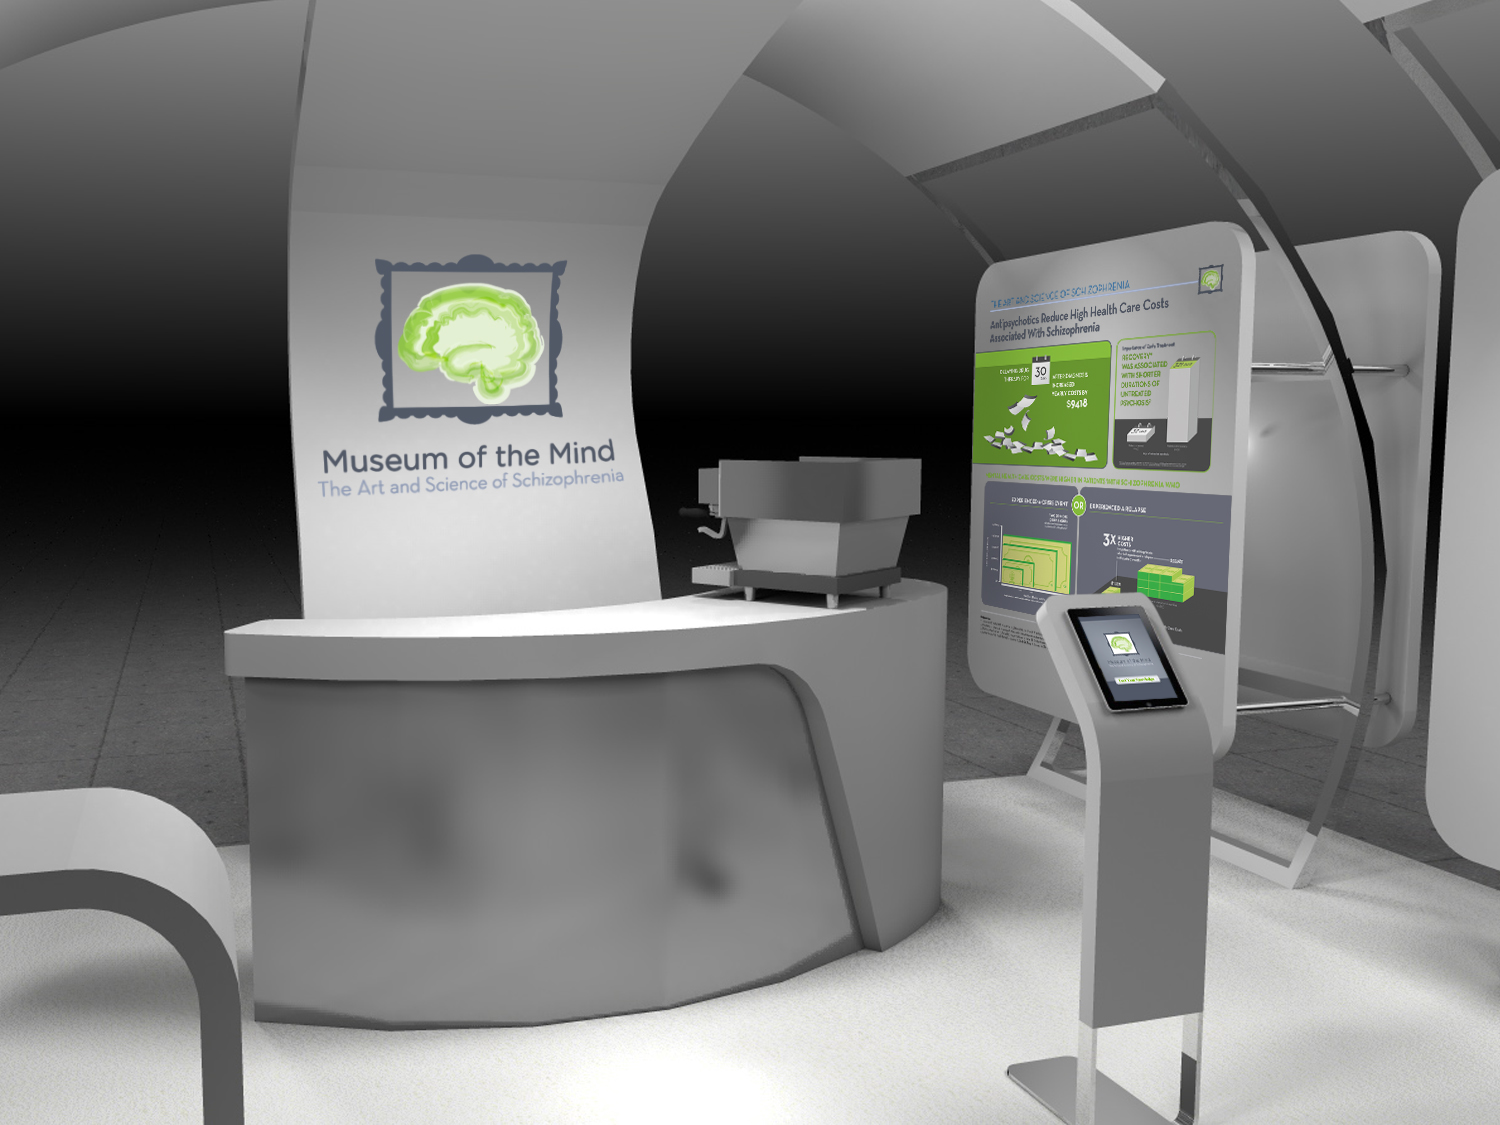 3D render of booth interior